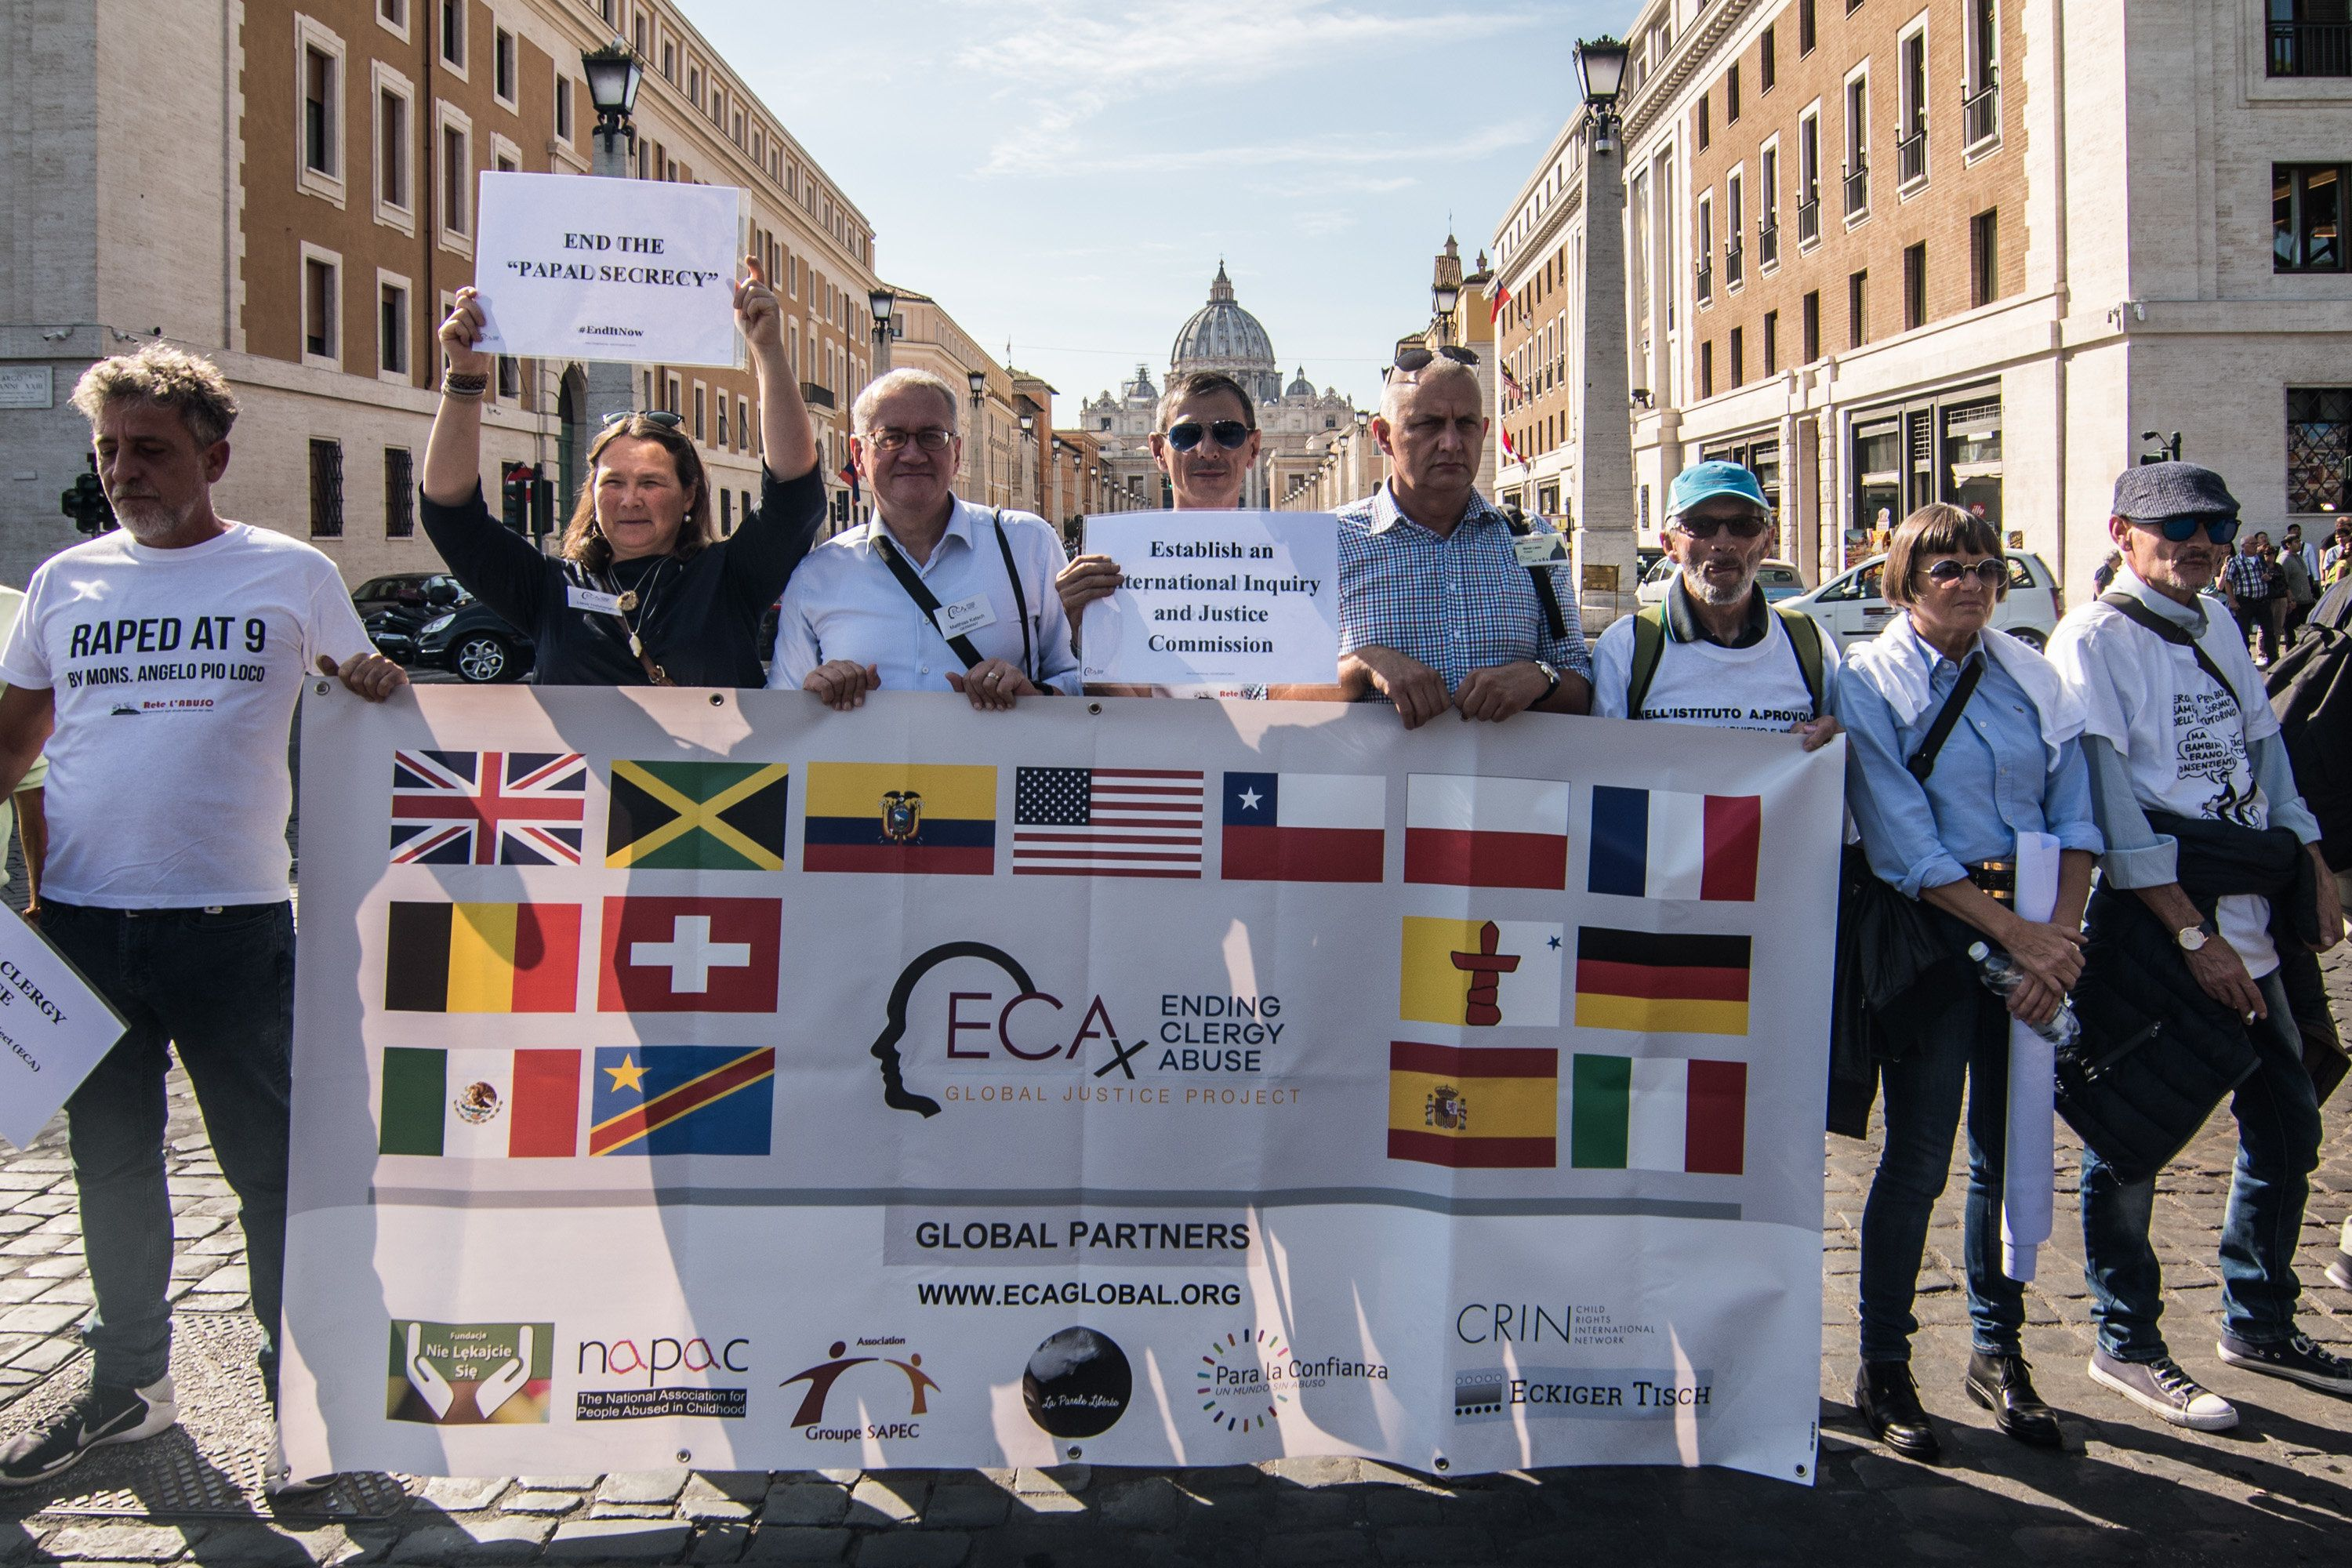 Sex Abuse Survivors Protest As Pope Francis, Bishops Gather For Global Meeting